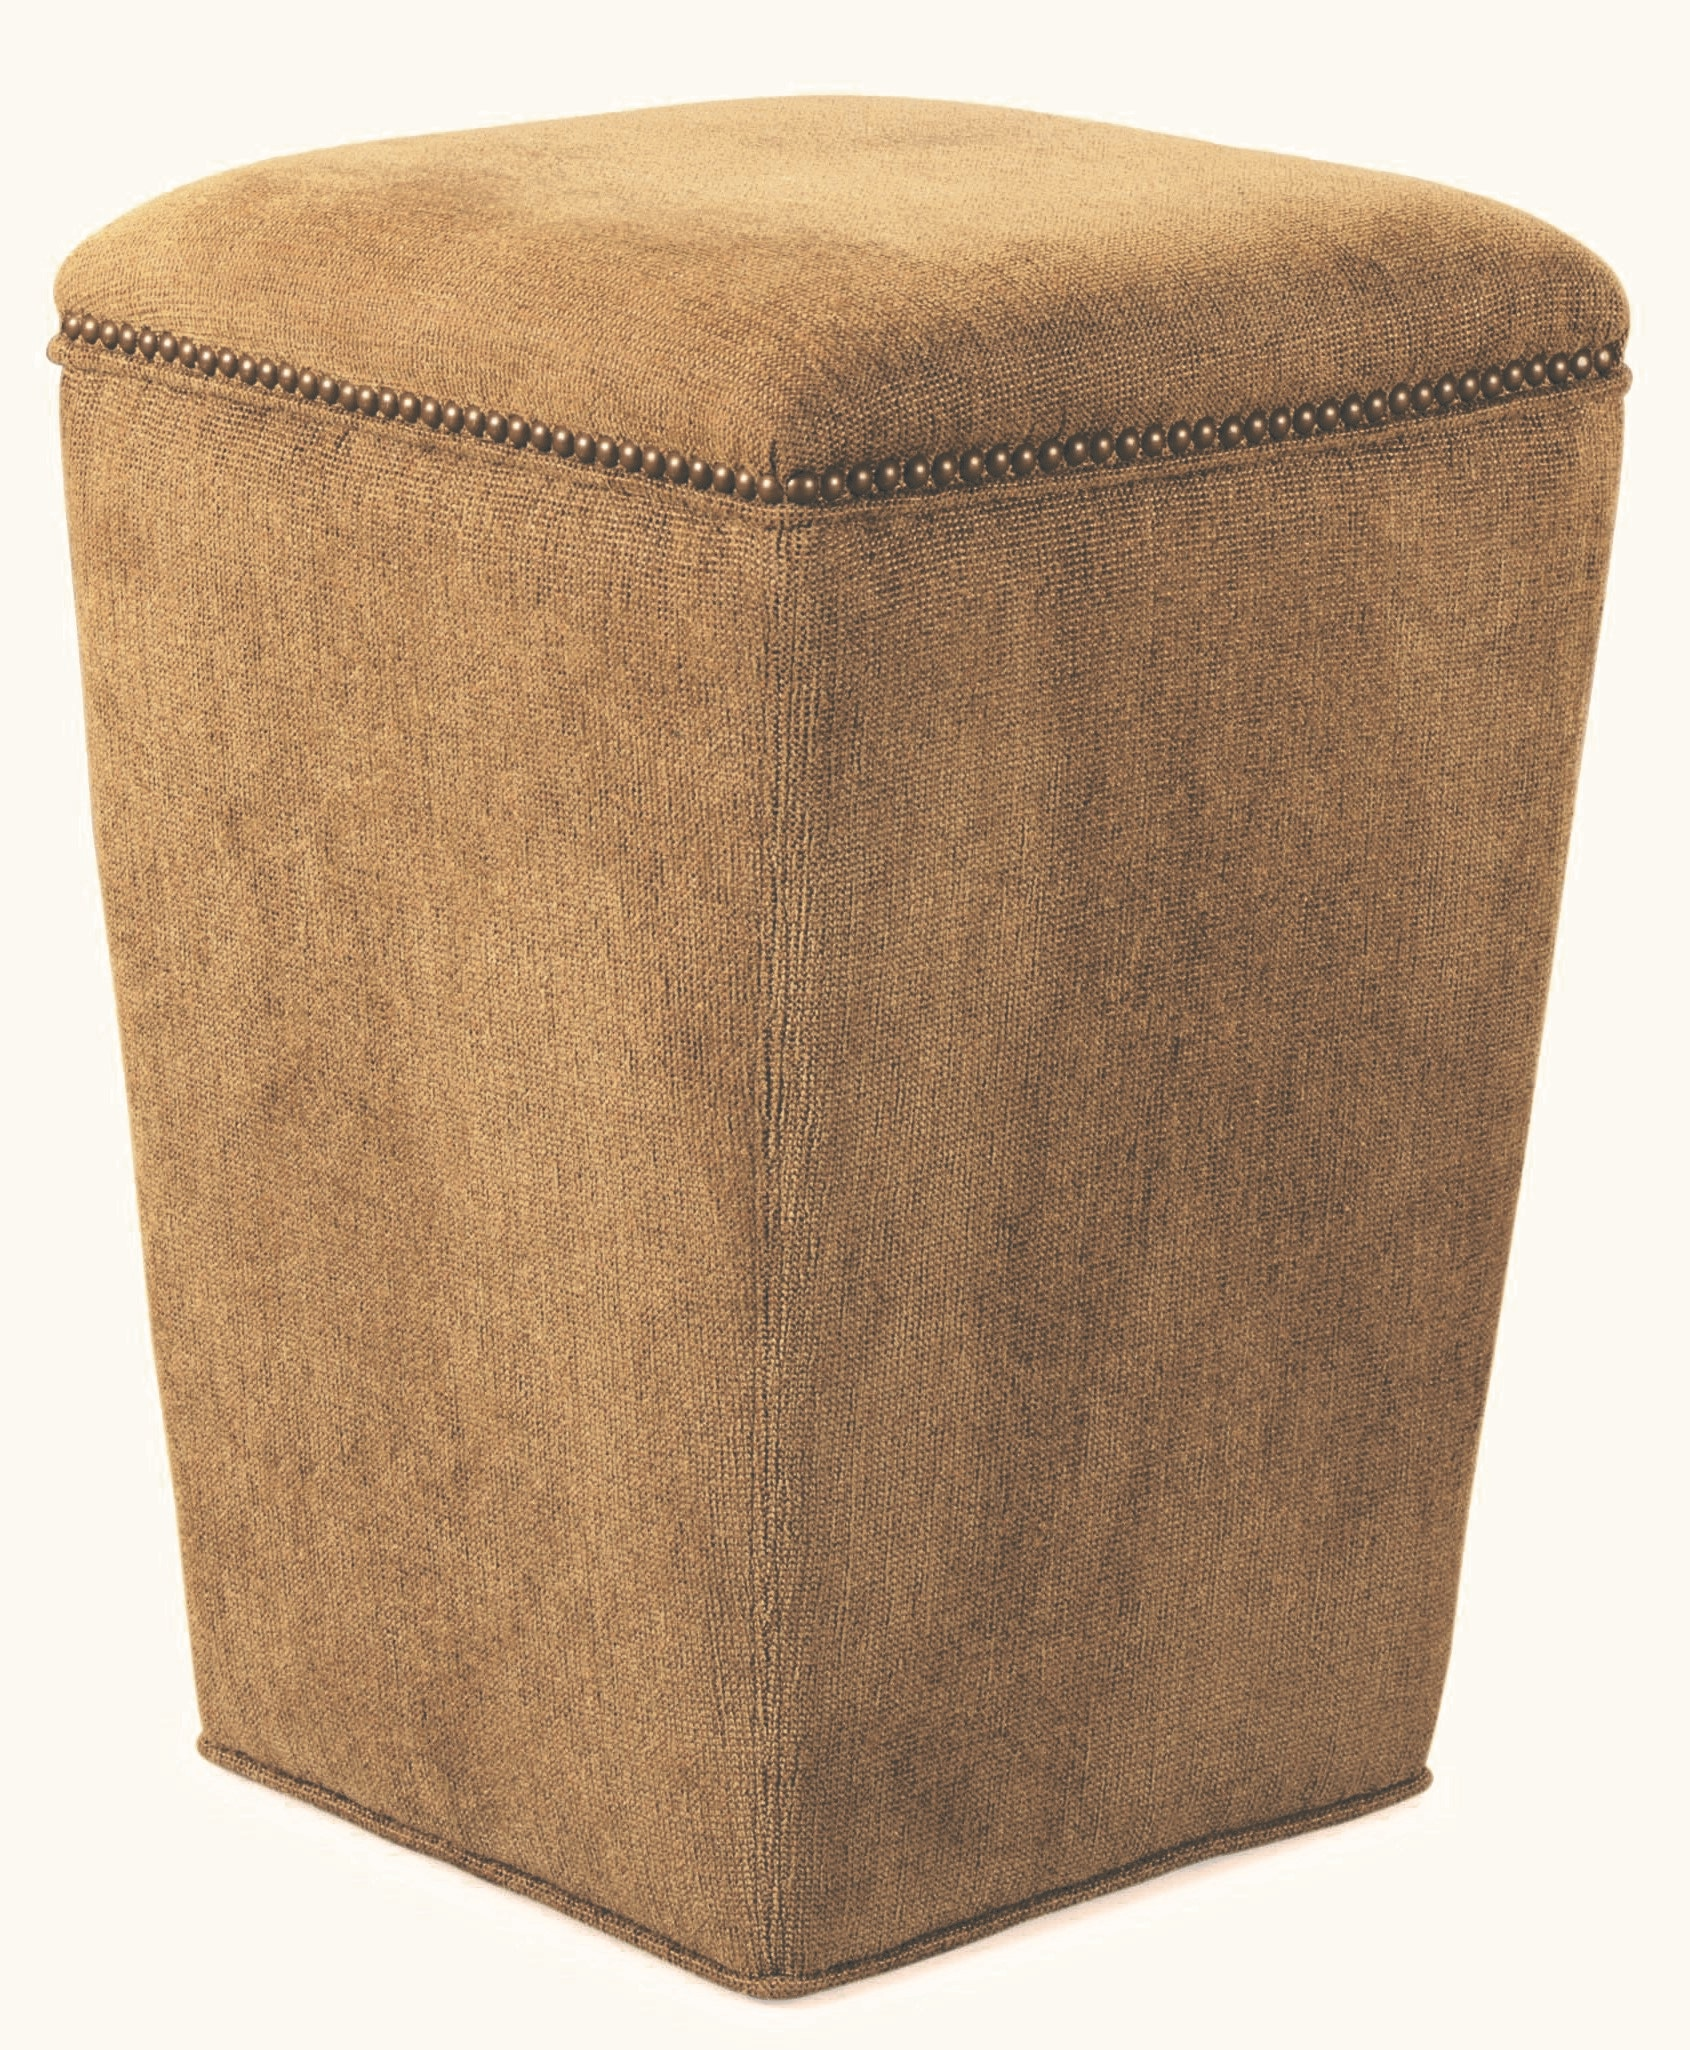 Lee Industries Leather Bongo Counter Stool L9315 51